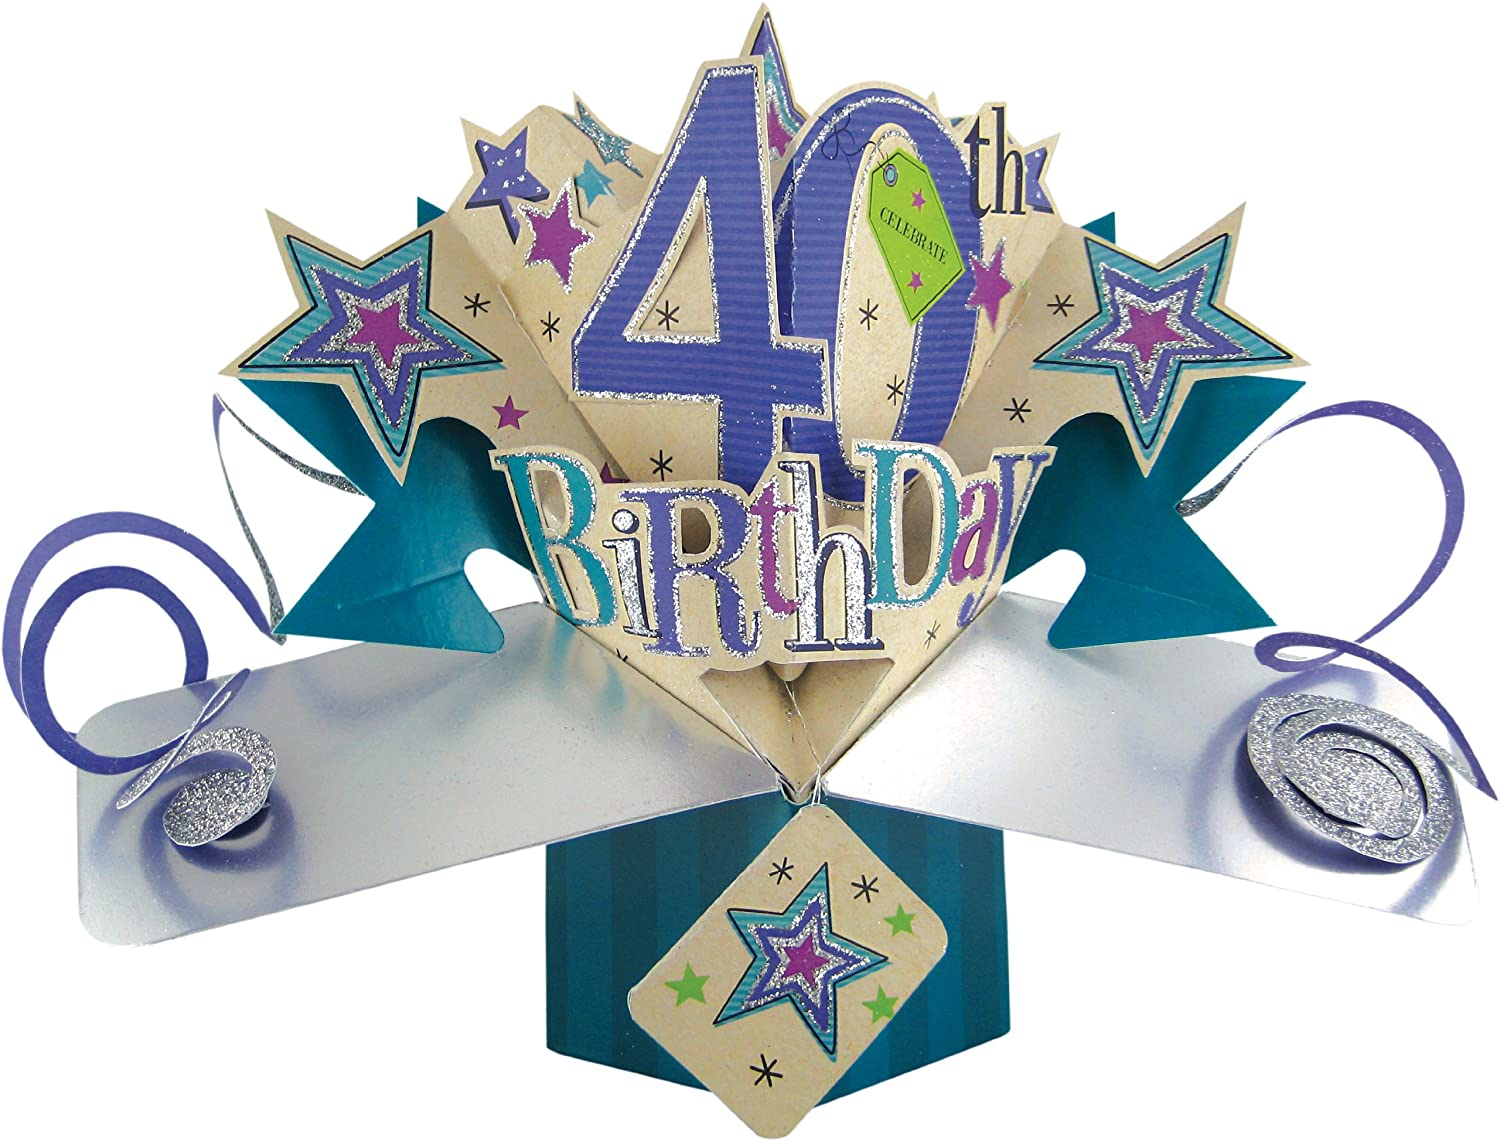 Second Nature A 40th Birthday with Stars Pop Up Greeting Card – 40th Birthday Card Ideas